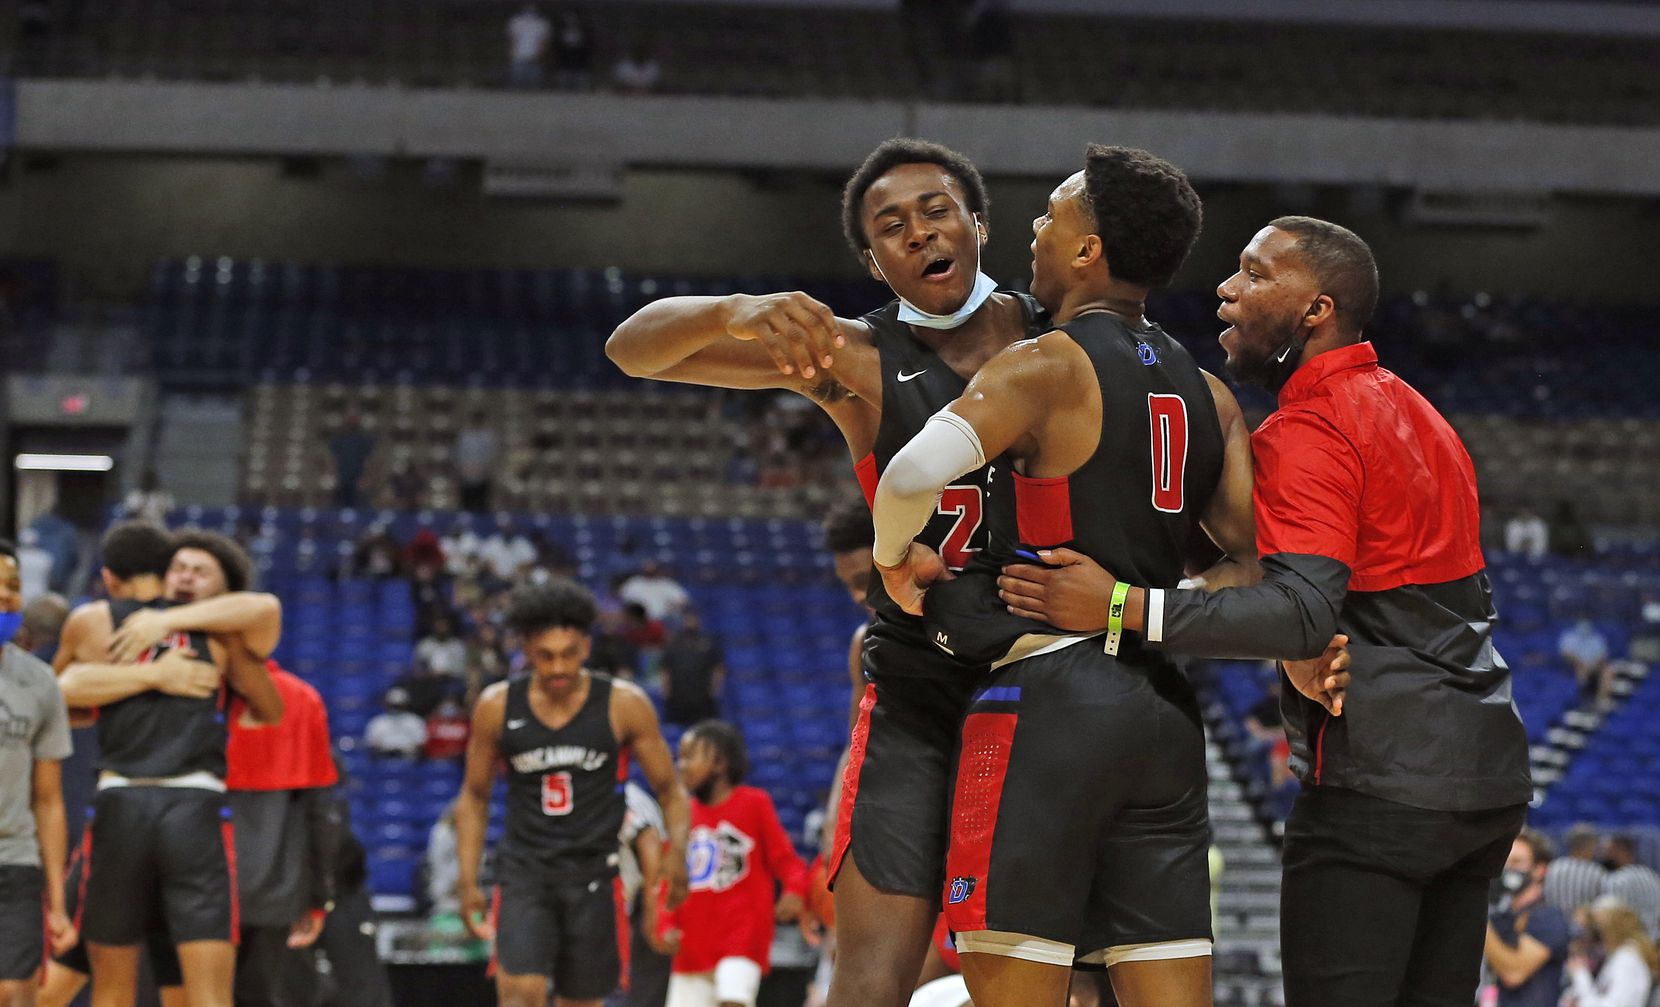 Duncanville Zhuric Phelps #0 is hugged by DeCannon Wickware and staff at the end of the game. UIL boys Class 6A basketball state championship game between Duncanville and Austin Westlake on Saturday, March 13, 2021 at the Alamodome.